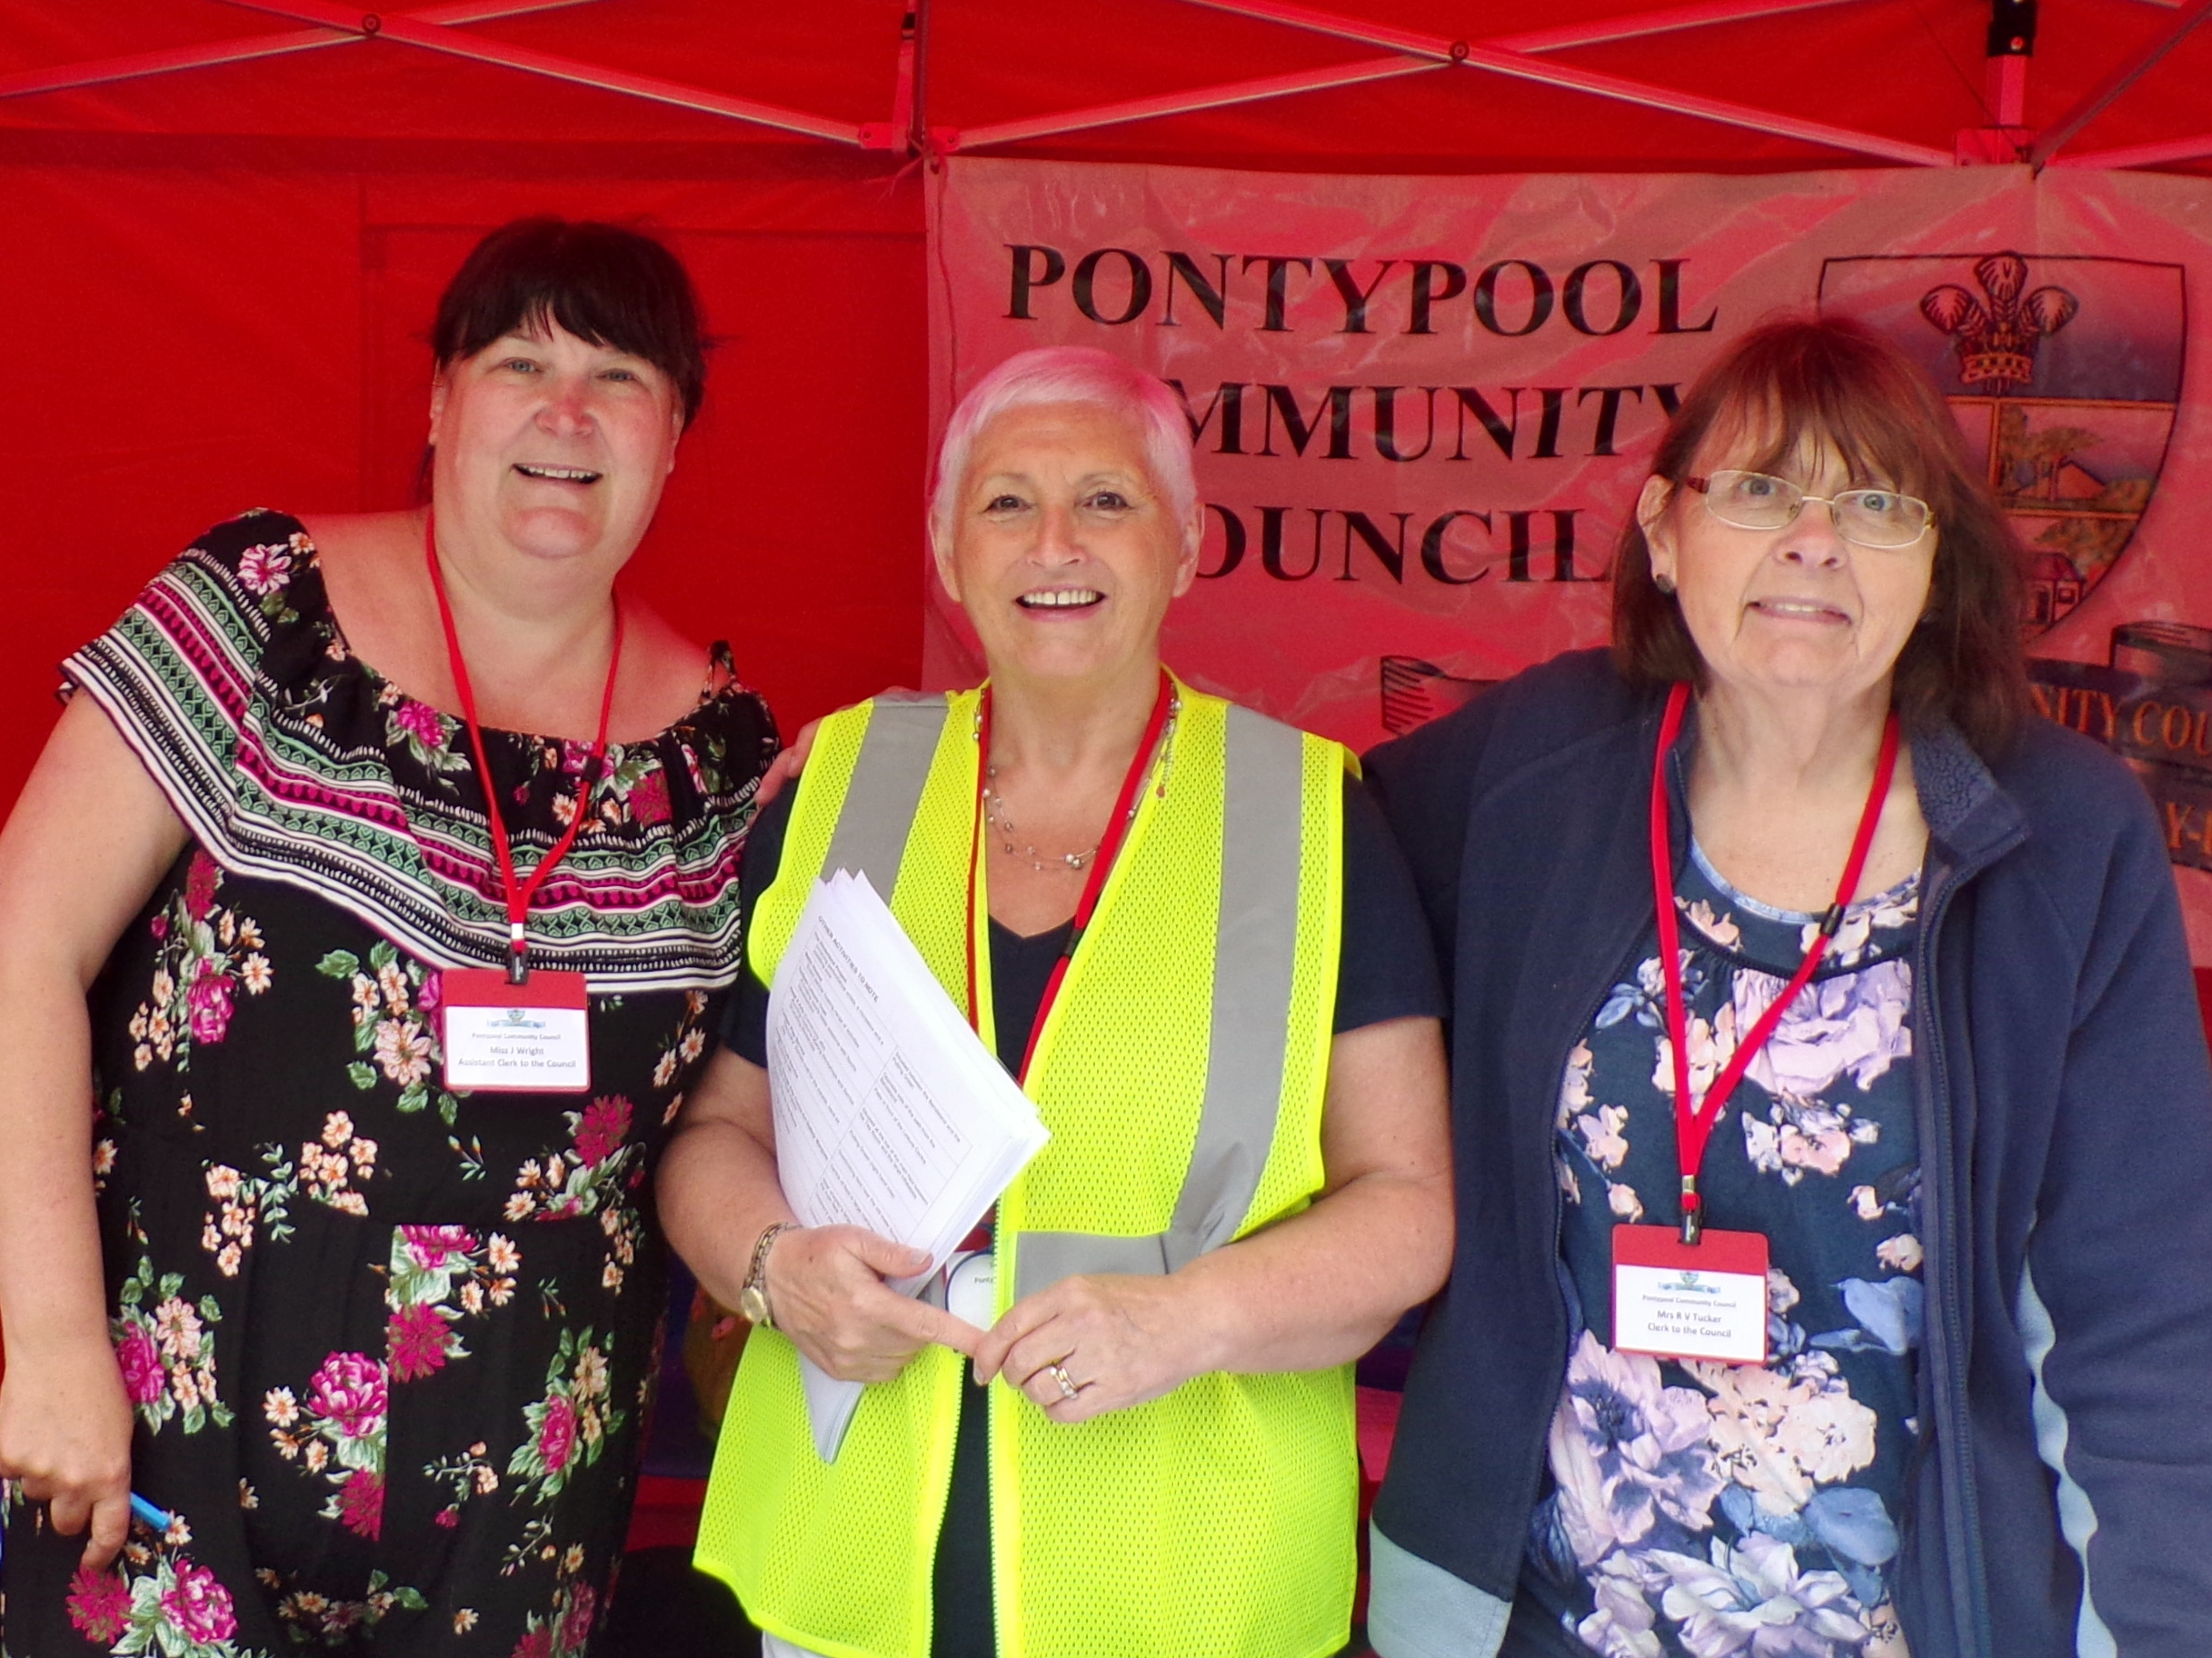 pontypool council stand